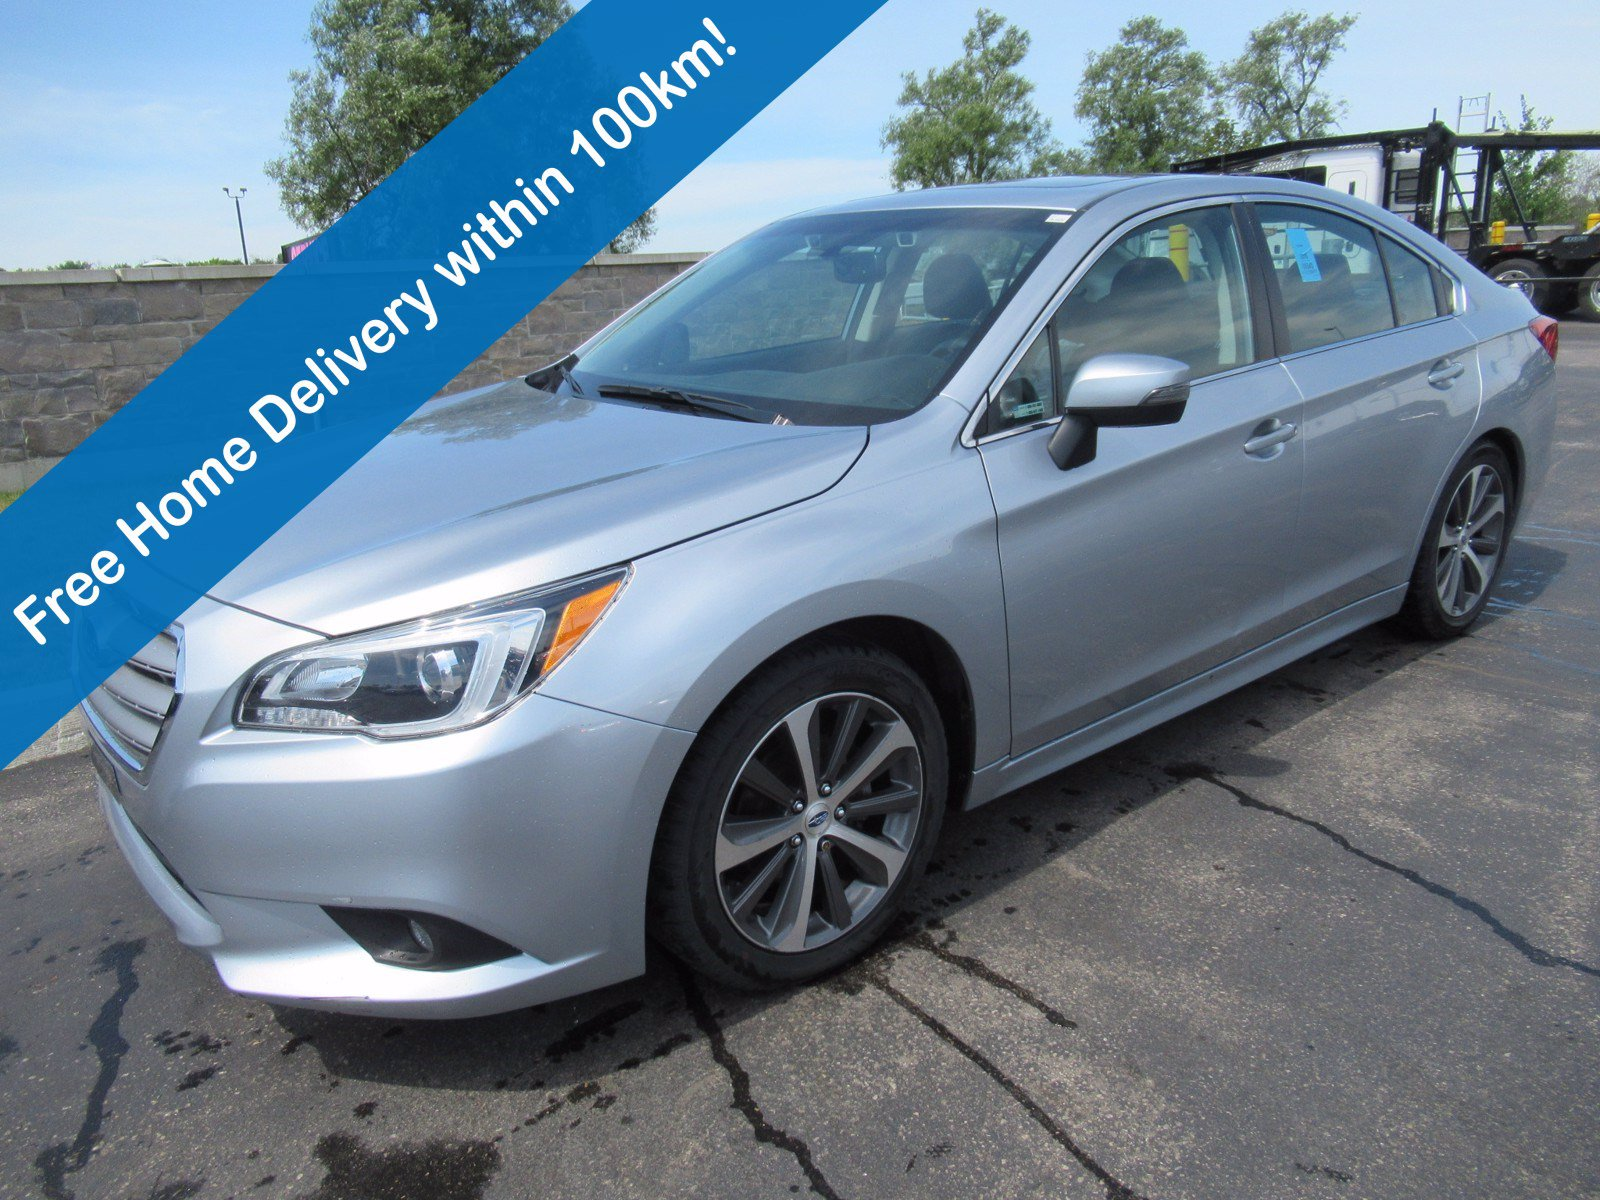 Certified Pre-Owned 2016 Subaru Legacy 2.5i AWD w/Limited & Tech Pkg, Leather, Navigation, Sunroof, Park Assist, Alloy Wheels & More!